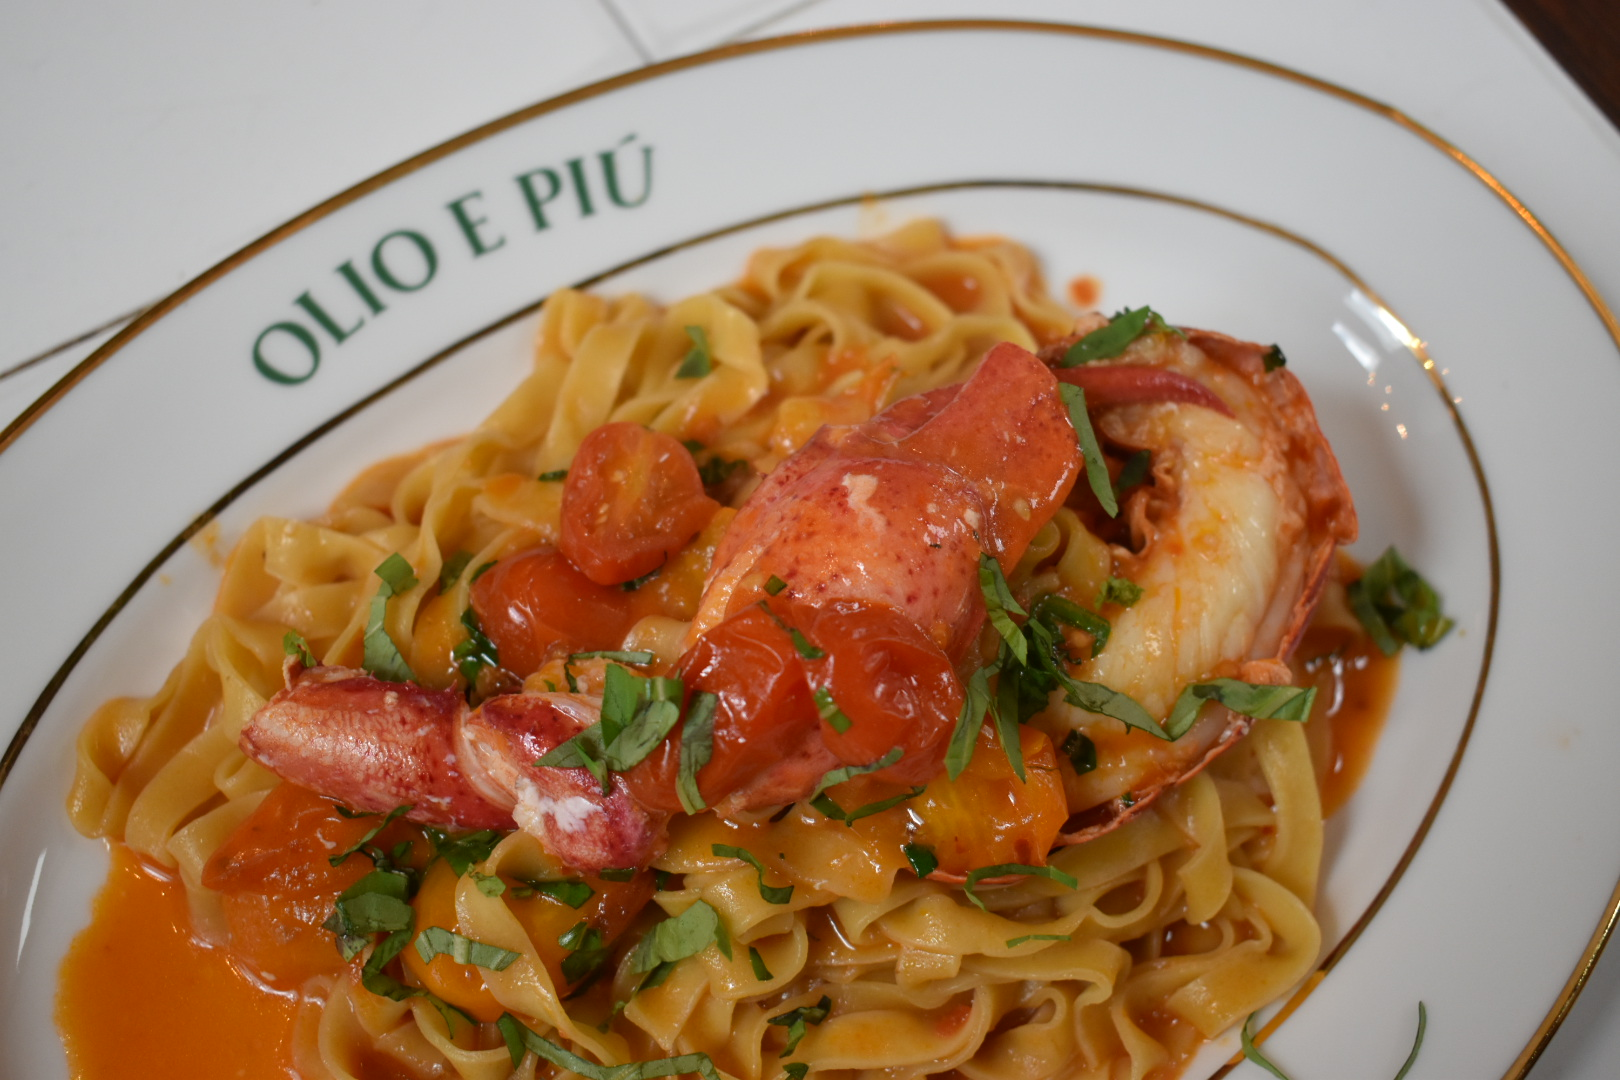 Your Weekly Indulgence: Lobster Fettuccine at Olio e Piú